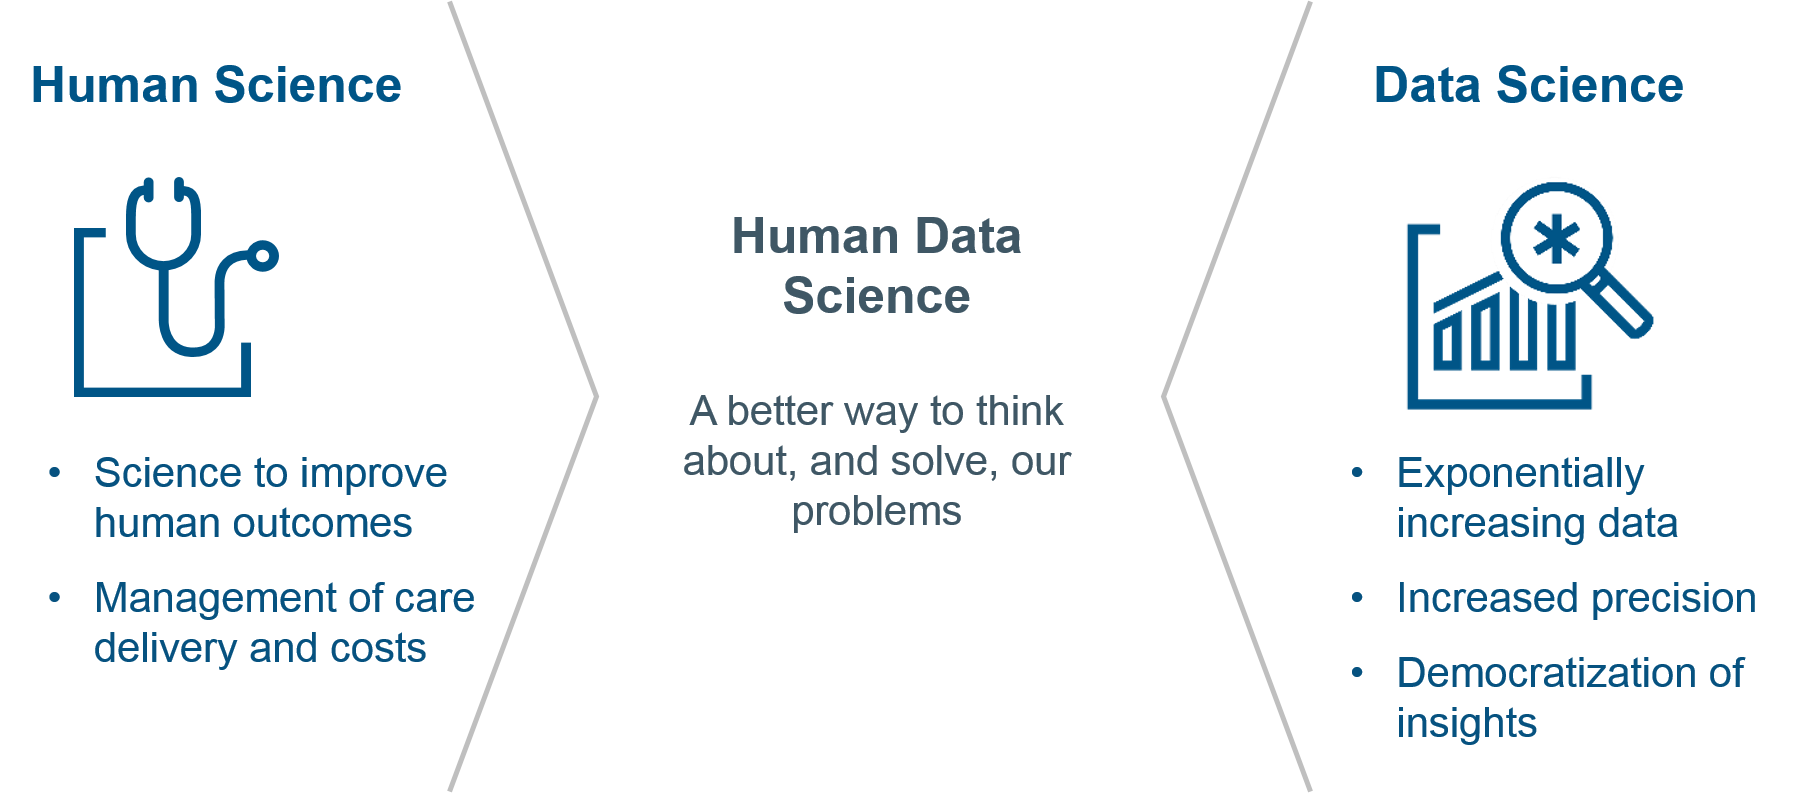 Human Data Science